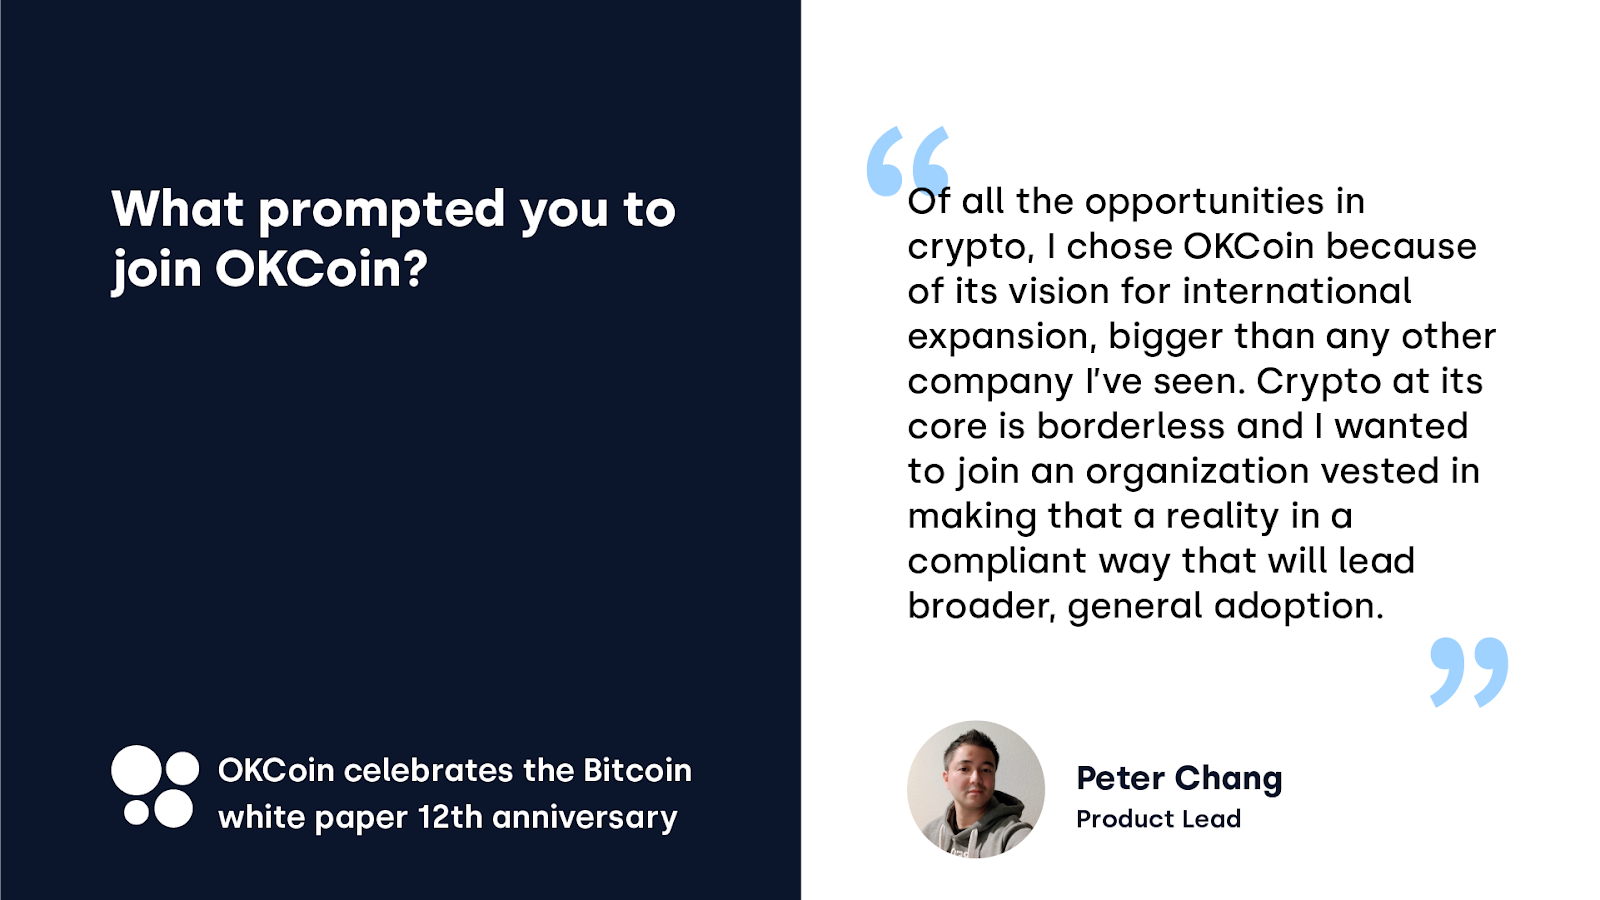 OKCoin celebrates the Bitcoin white paper anniversary — a quote from Peter Chang, Product Lead at OKCoin